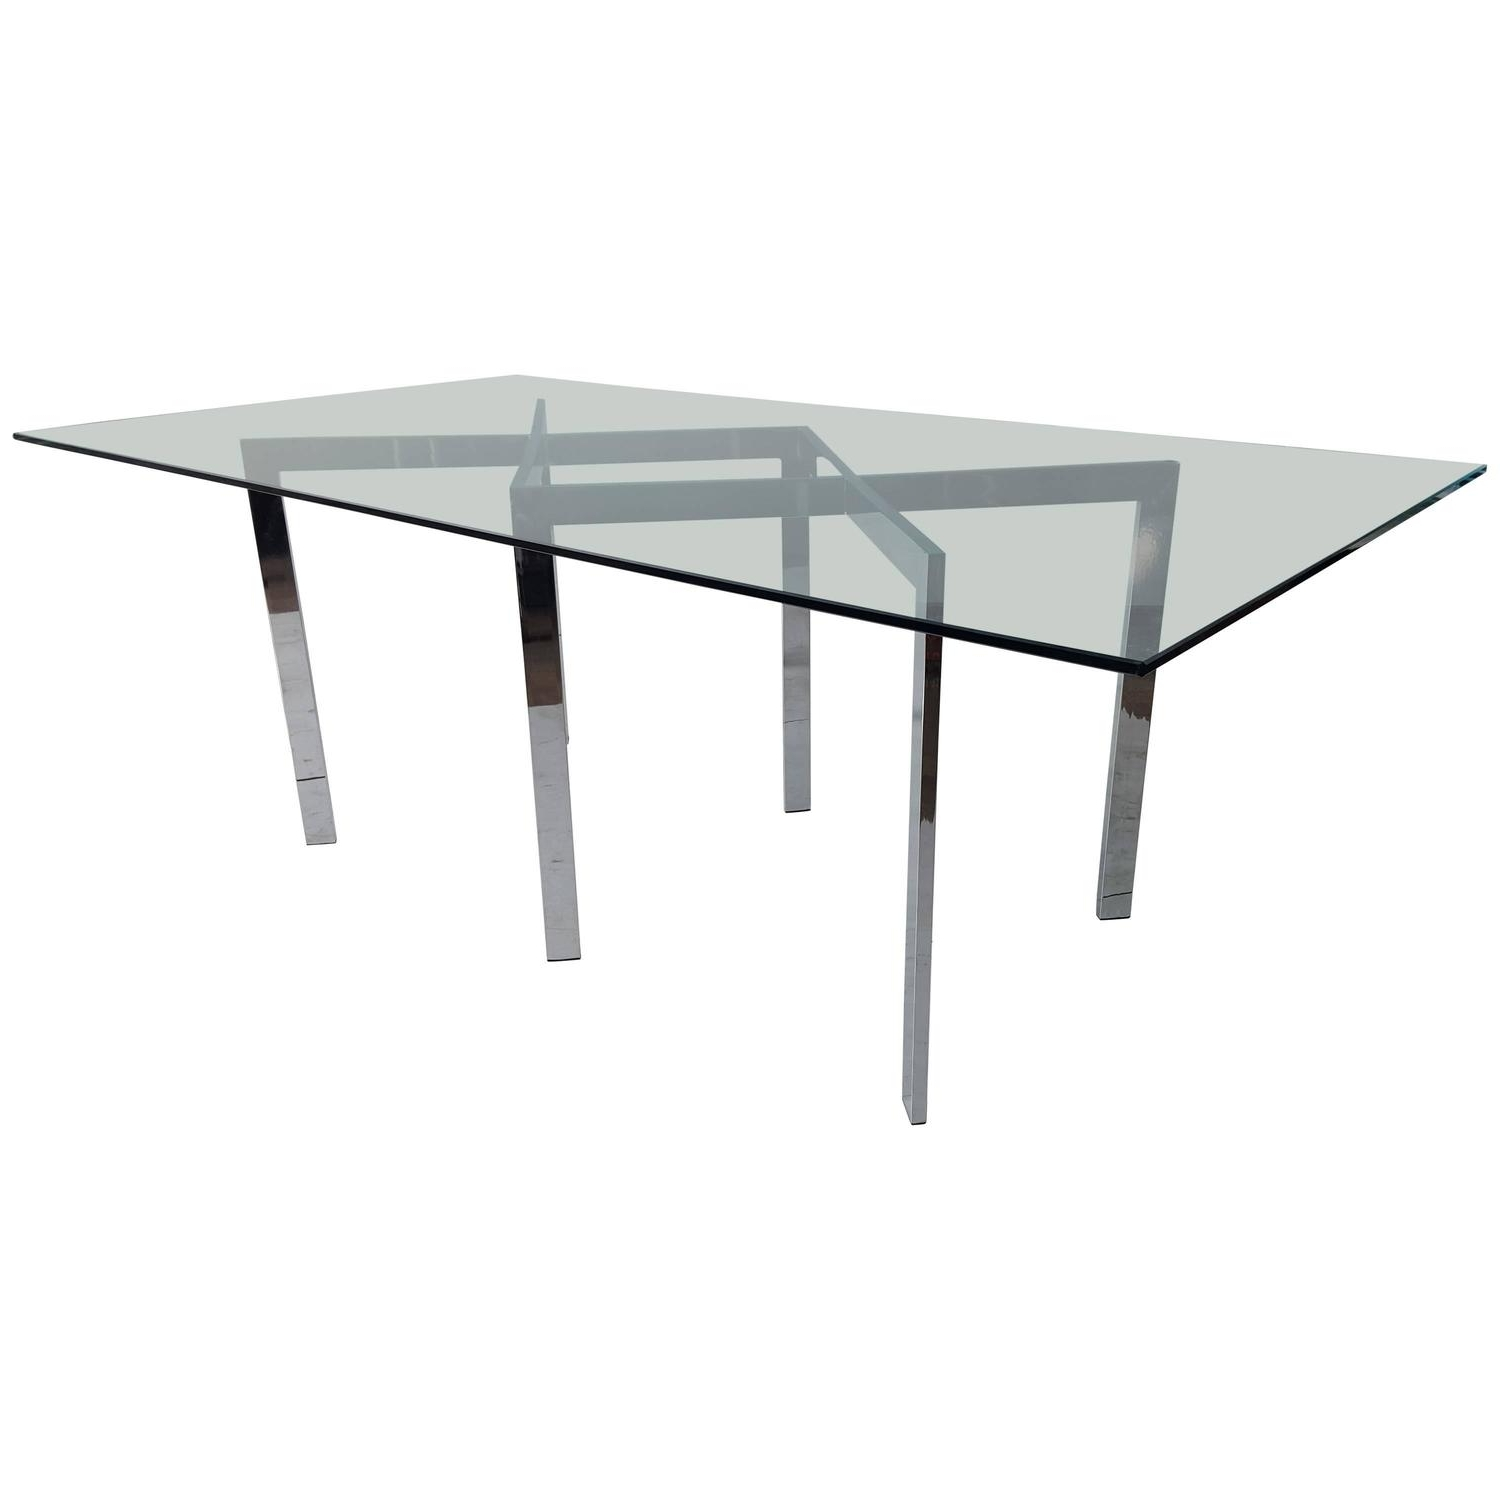 Milo Baughman, Thayer Coggin Chrome X Base And Glass Dining Table Inside Well Liked Chrome Glass Dining Tables (View 19 of 25)